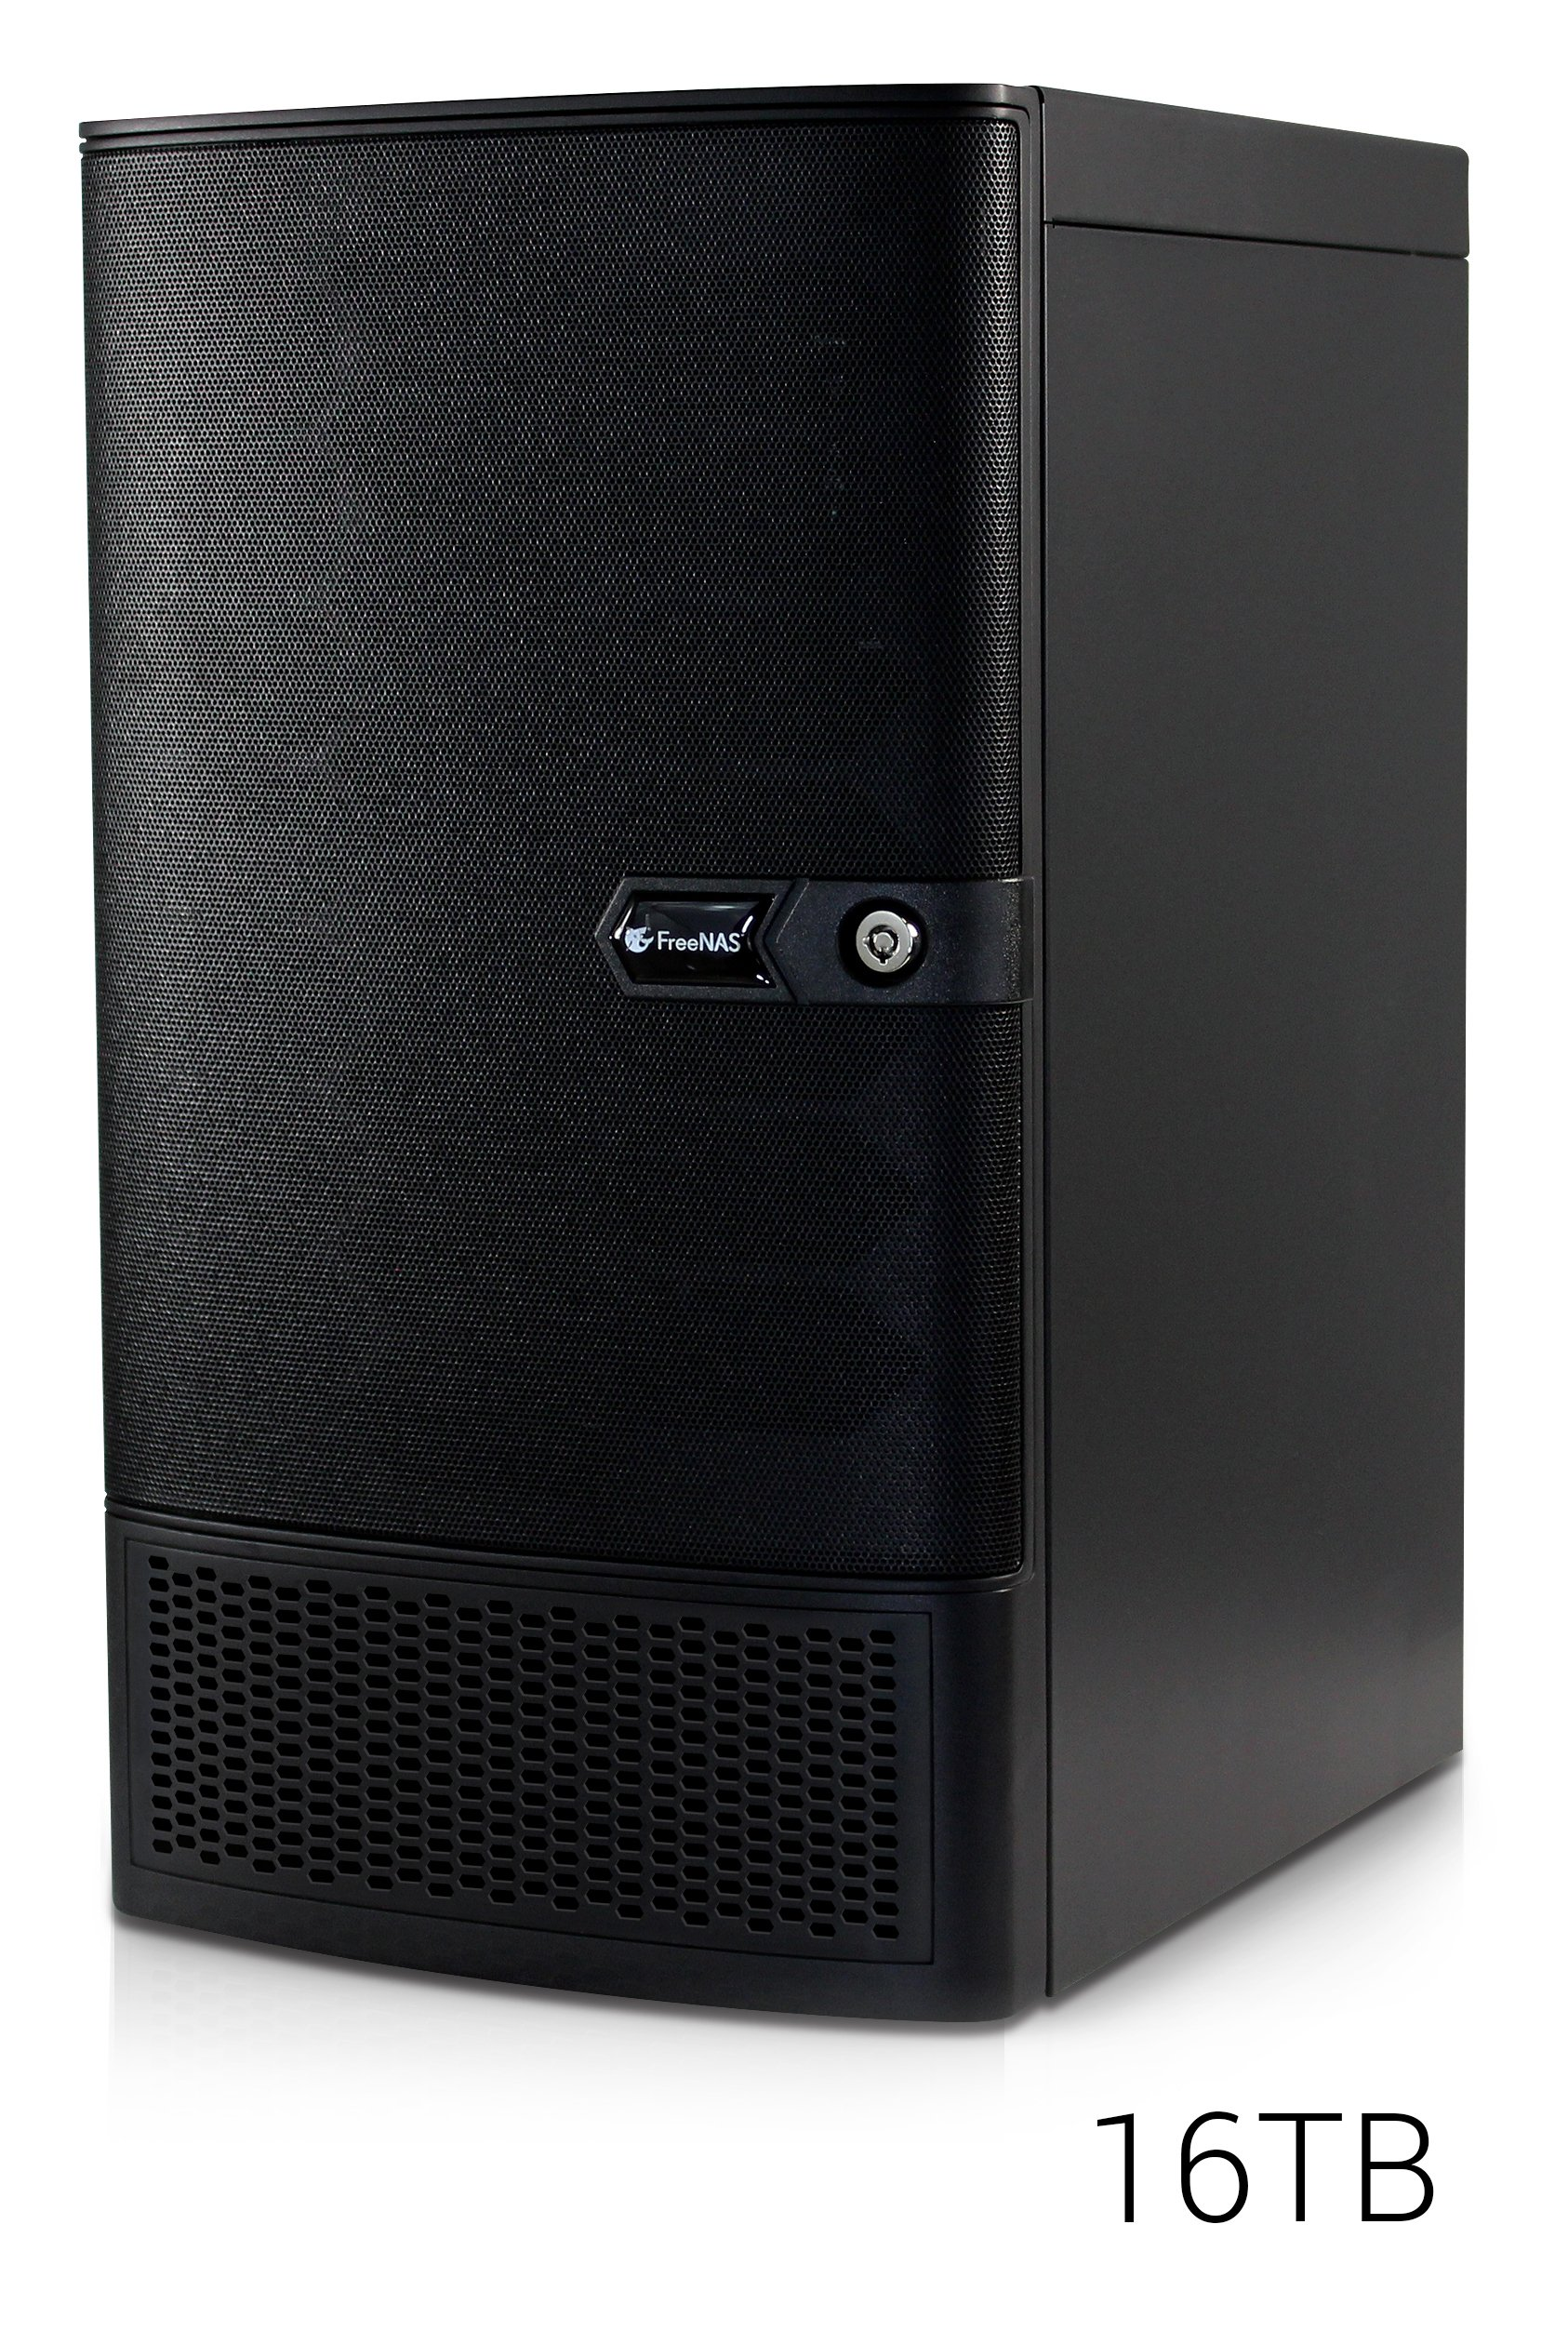 FreeNAS Mini XL (16TB) - Network Attached Storage